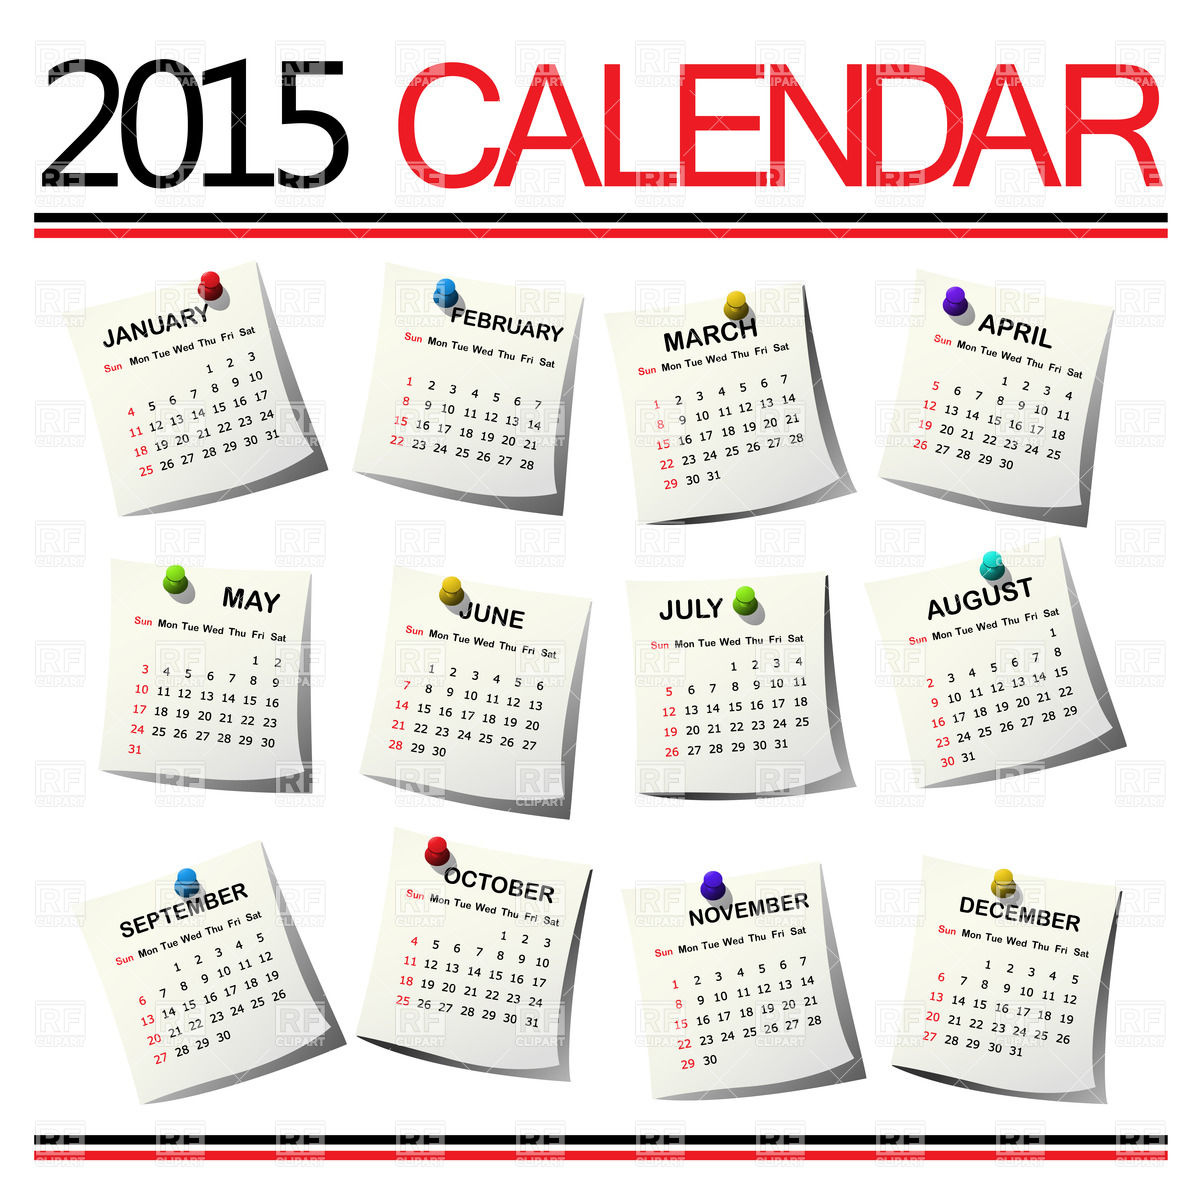 Calendar For 2015 Year For All Months 35322 Calendars Layouts